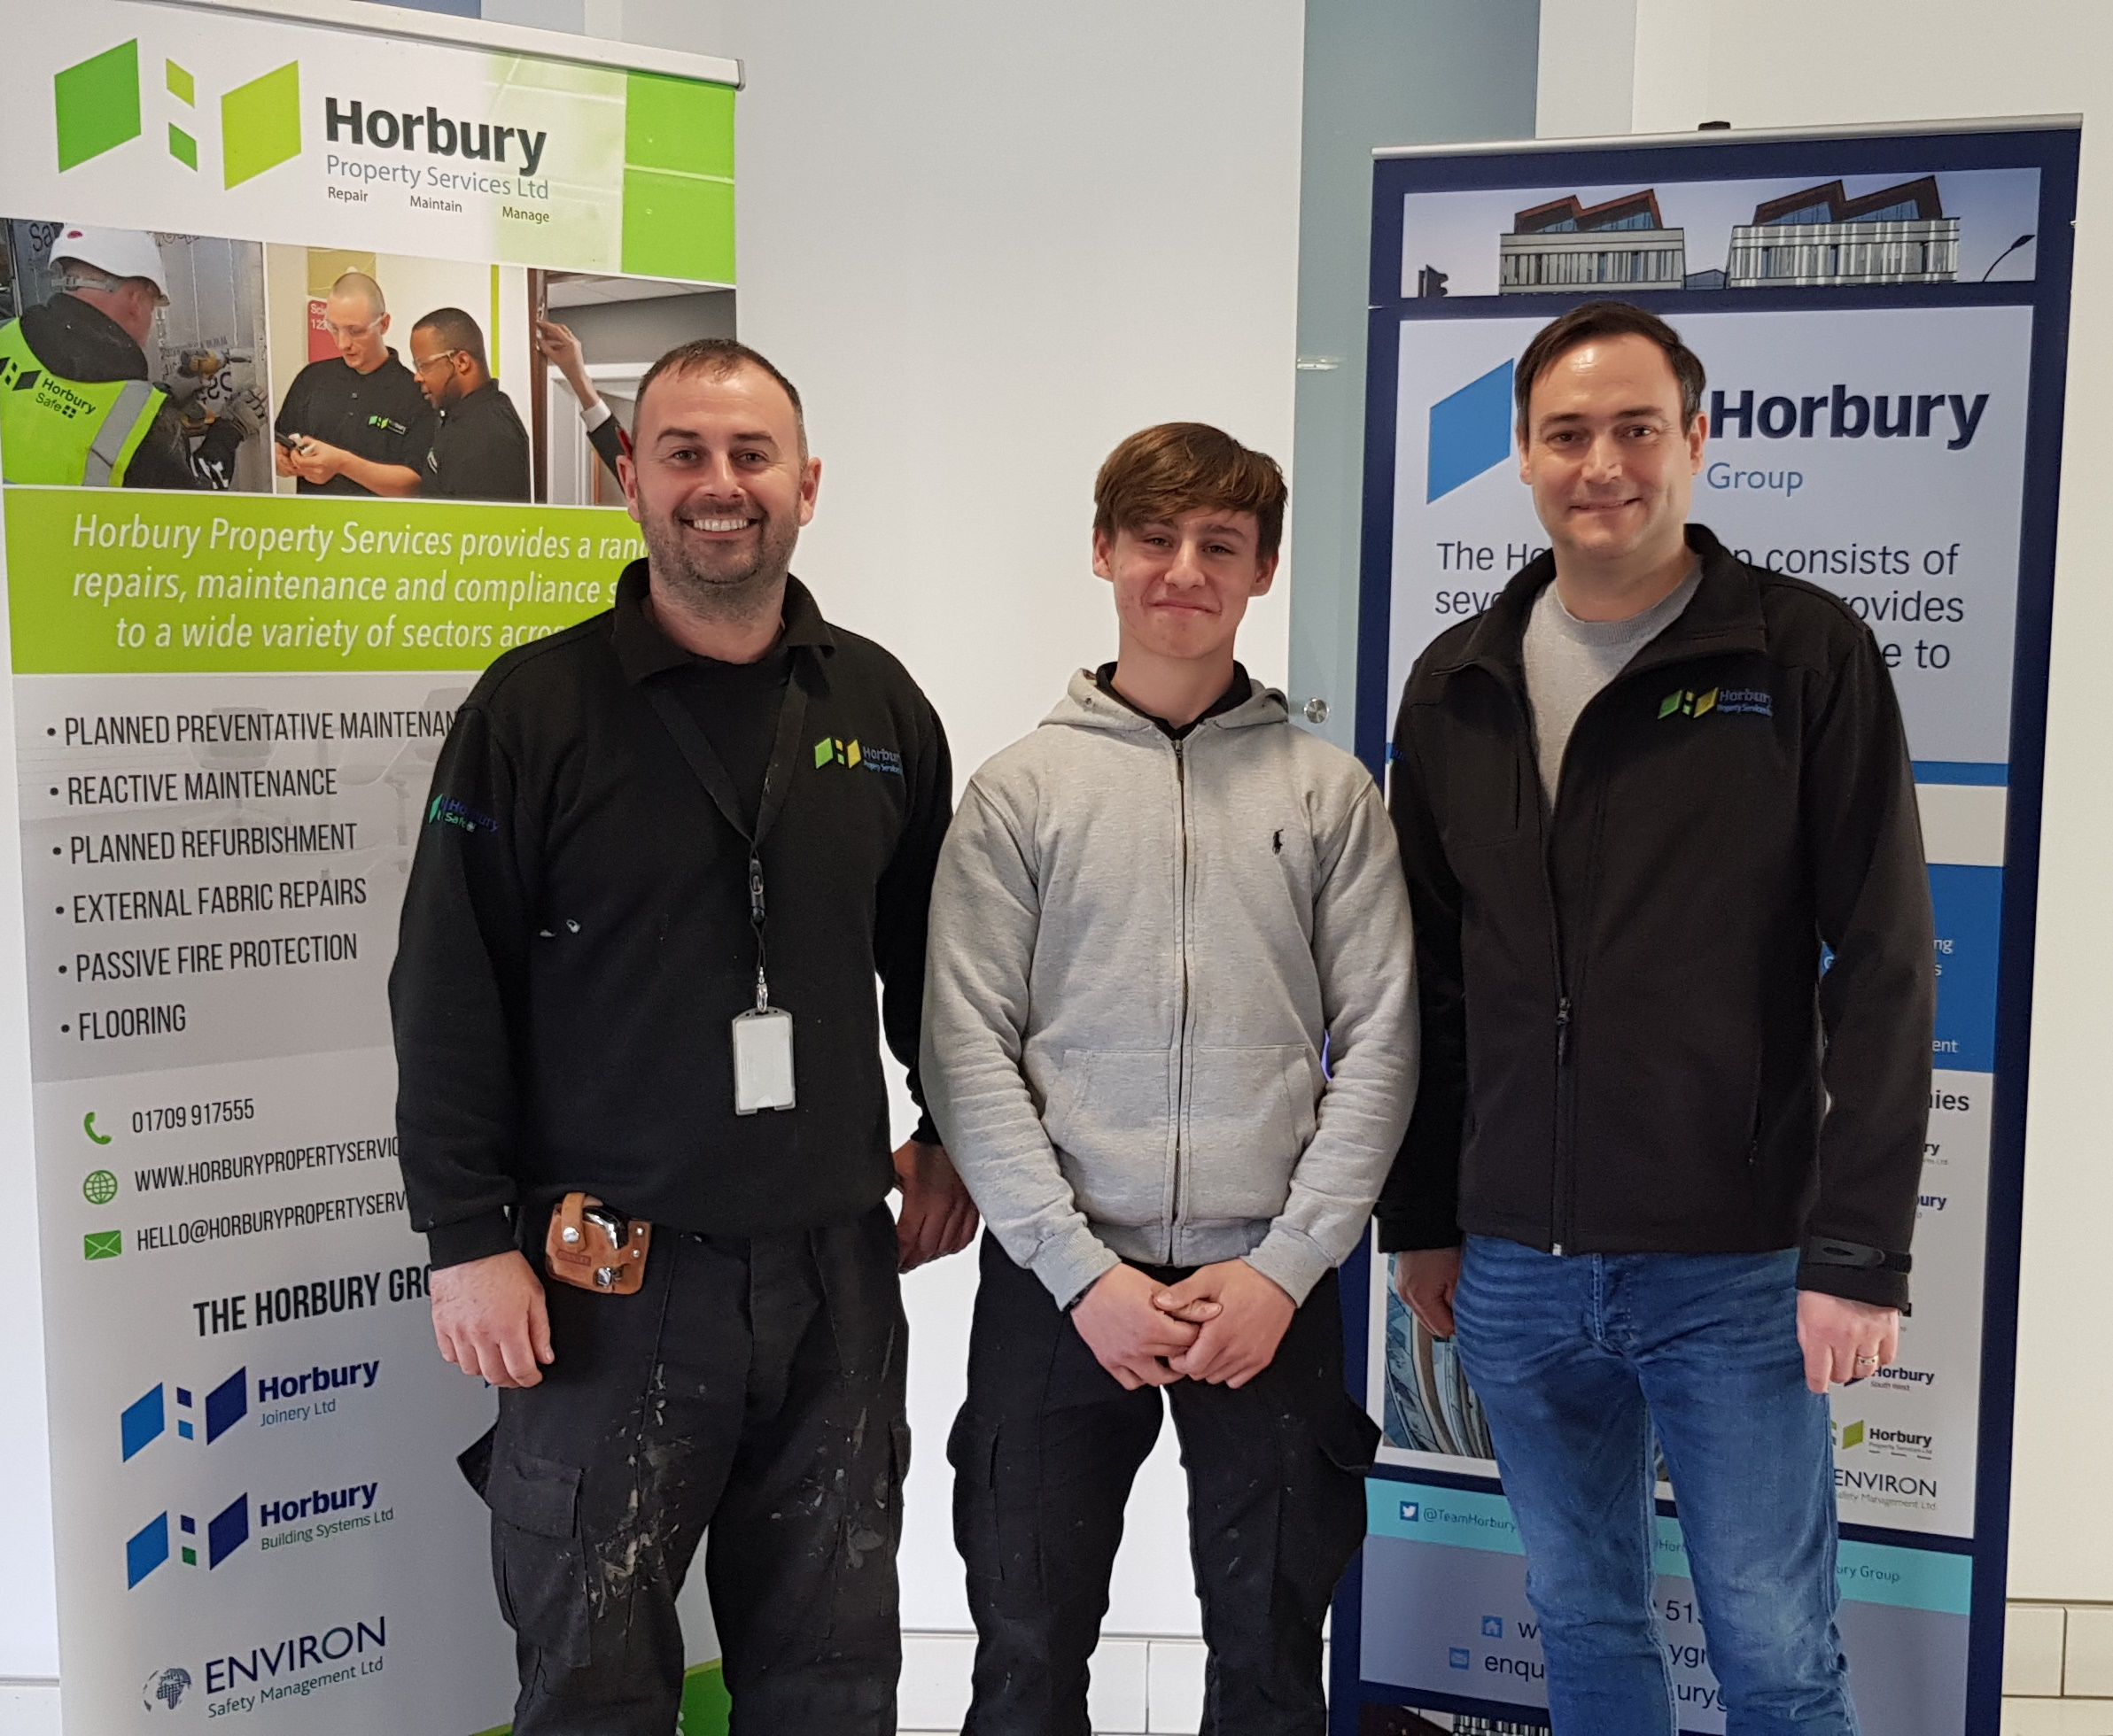 CURTIS RECEIVES APPRENTICE AWARD FROM HORBURY AND THE SHEFFIELD COLLEGE